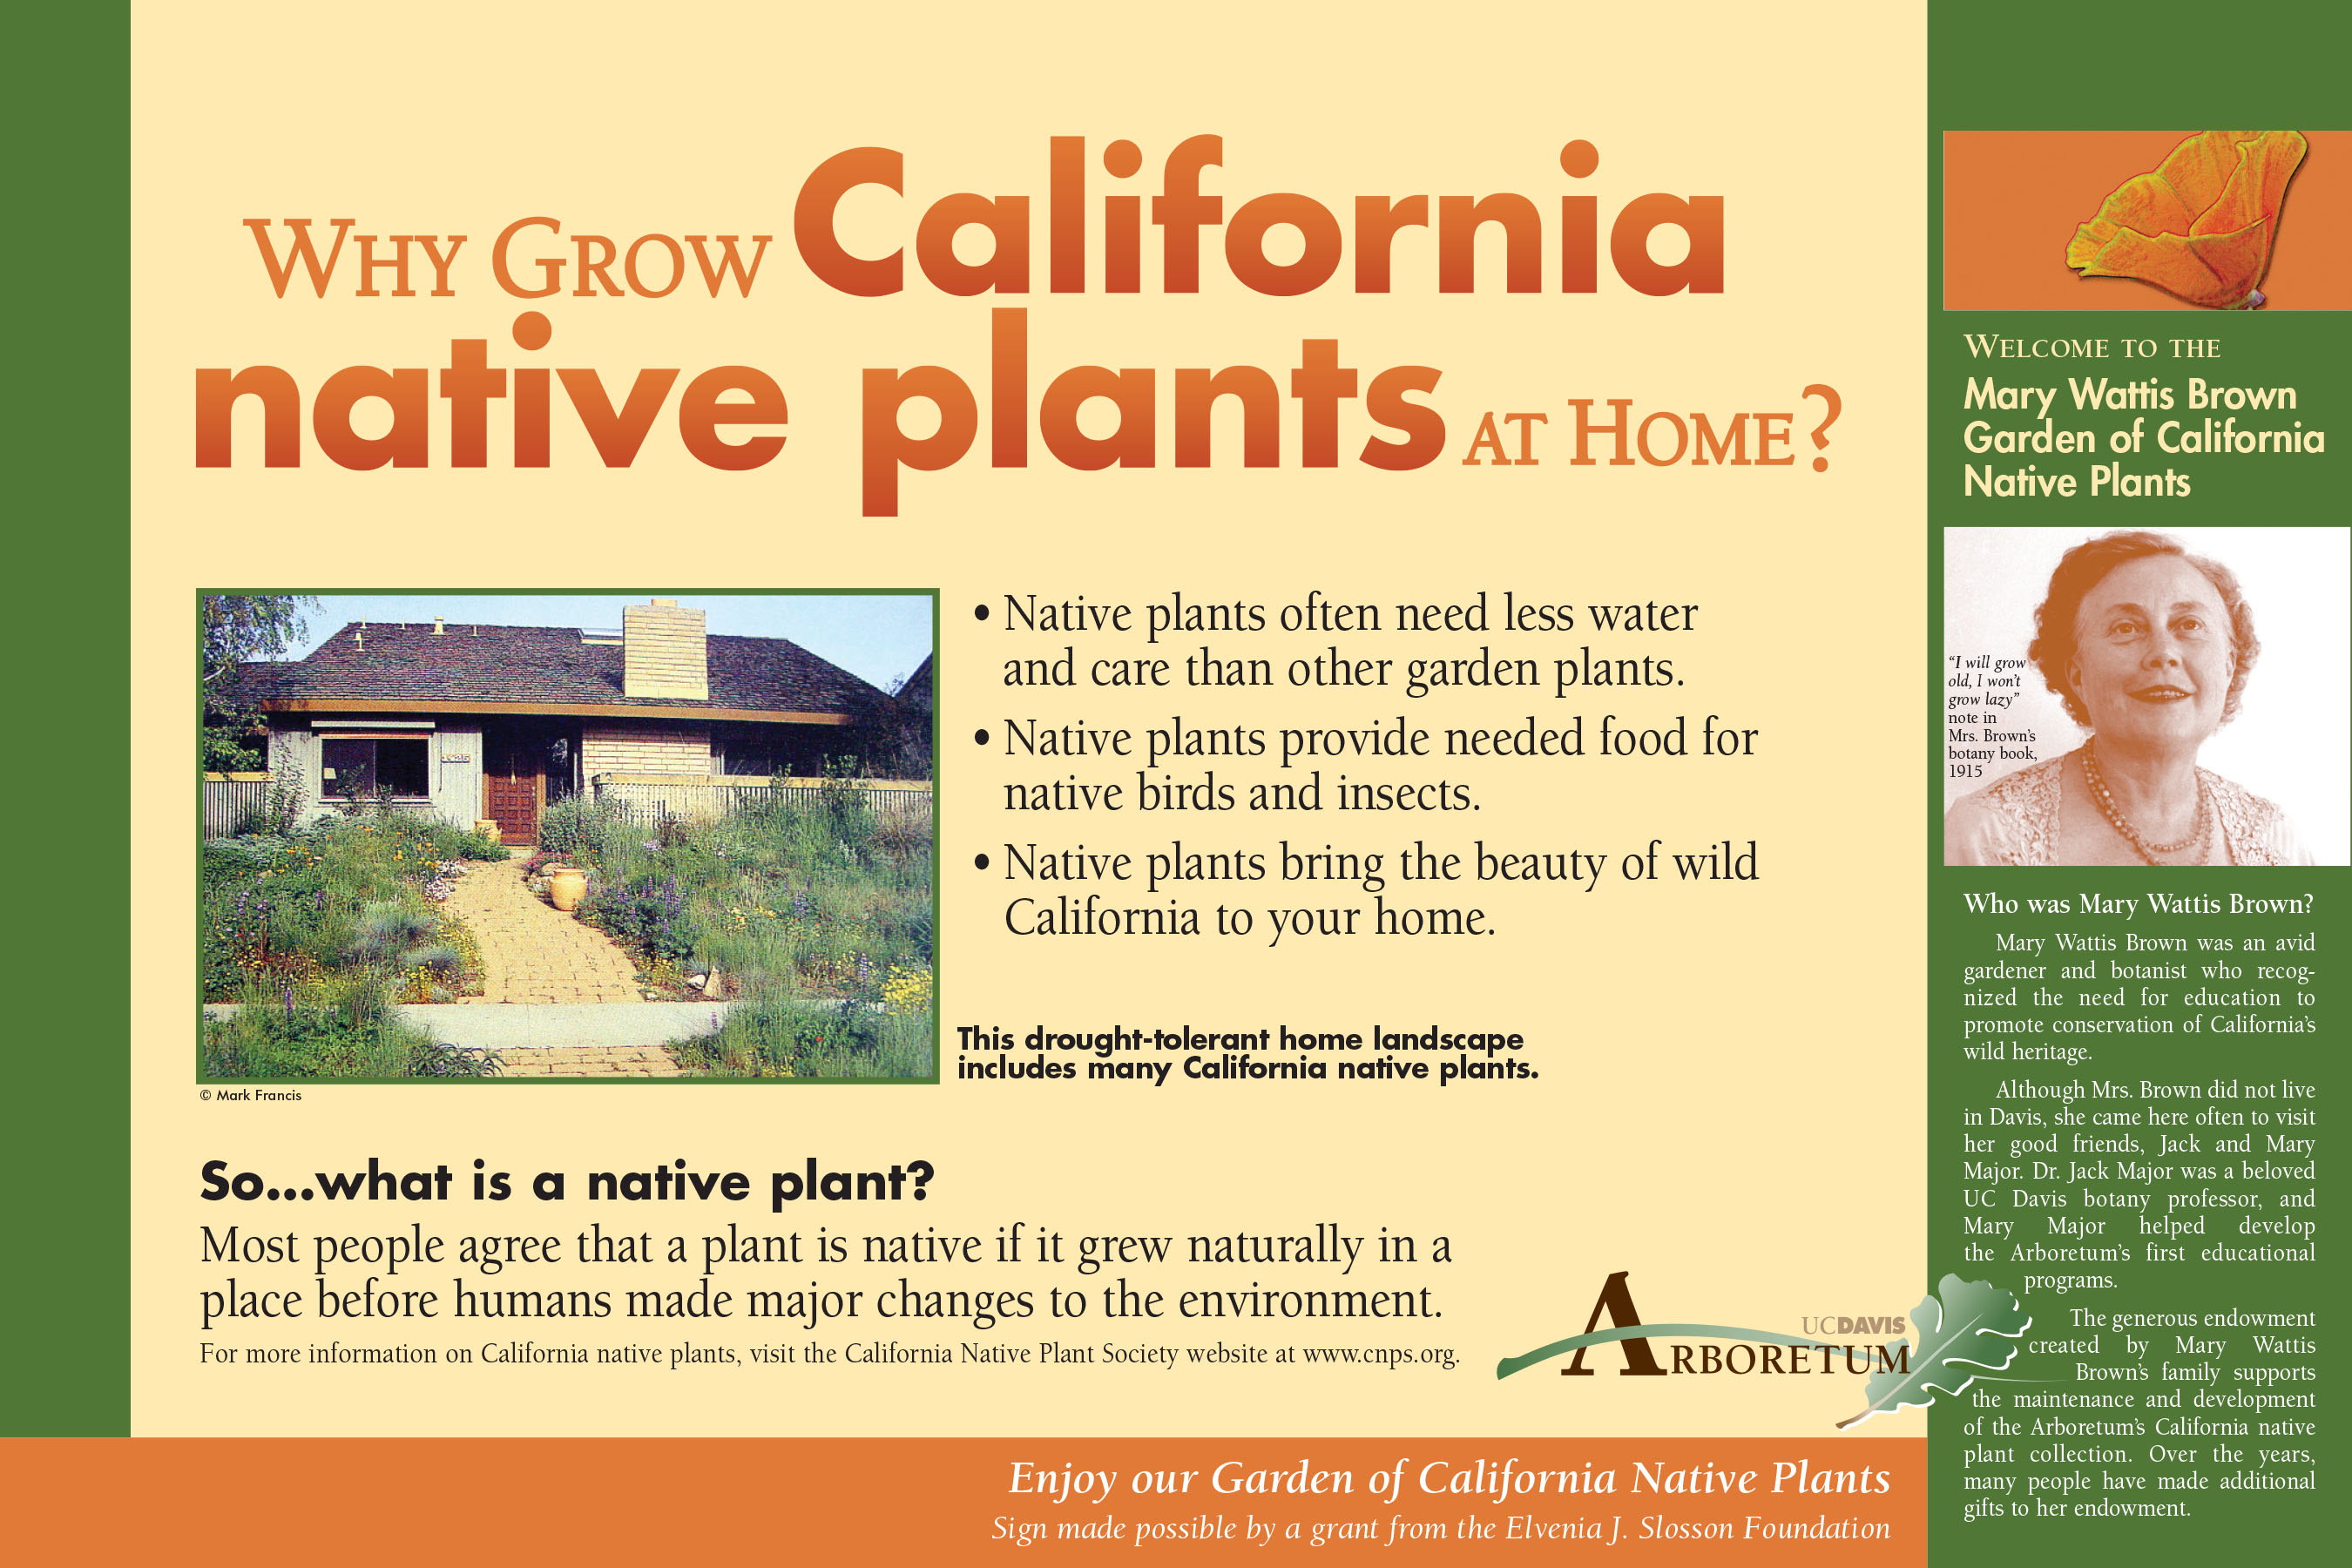 Preview of Mary Wattis Brown Garden of California Native Plants exhibit .pdf